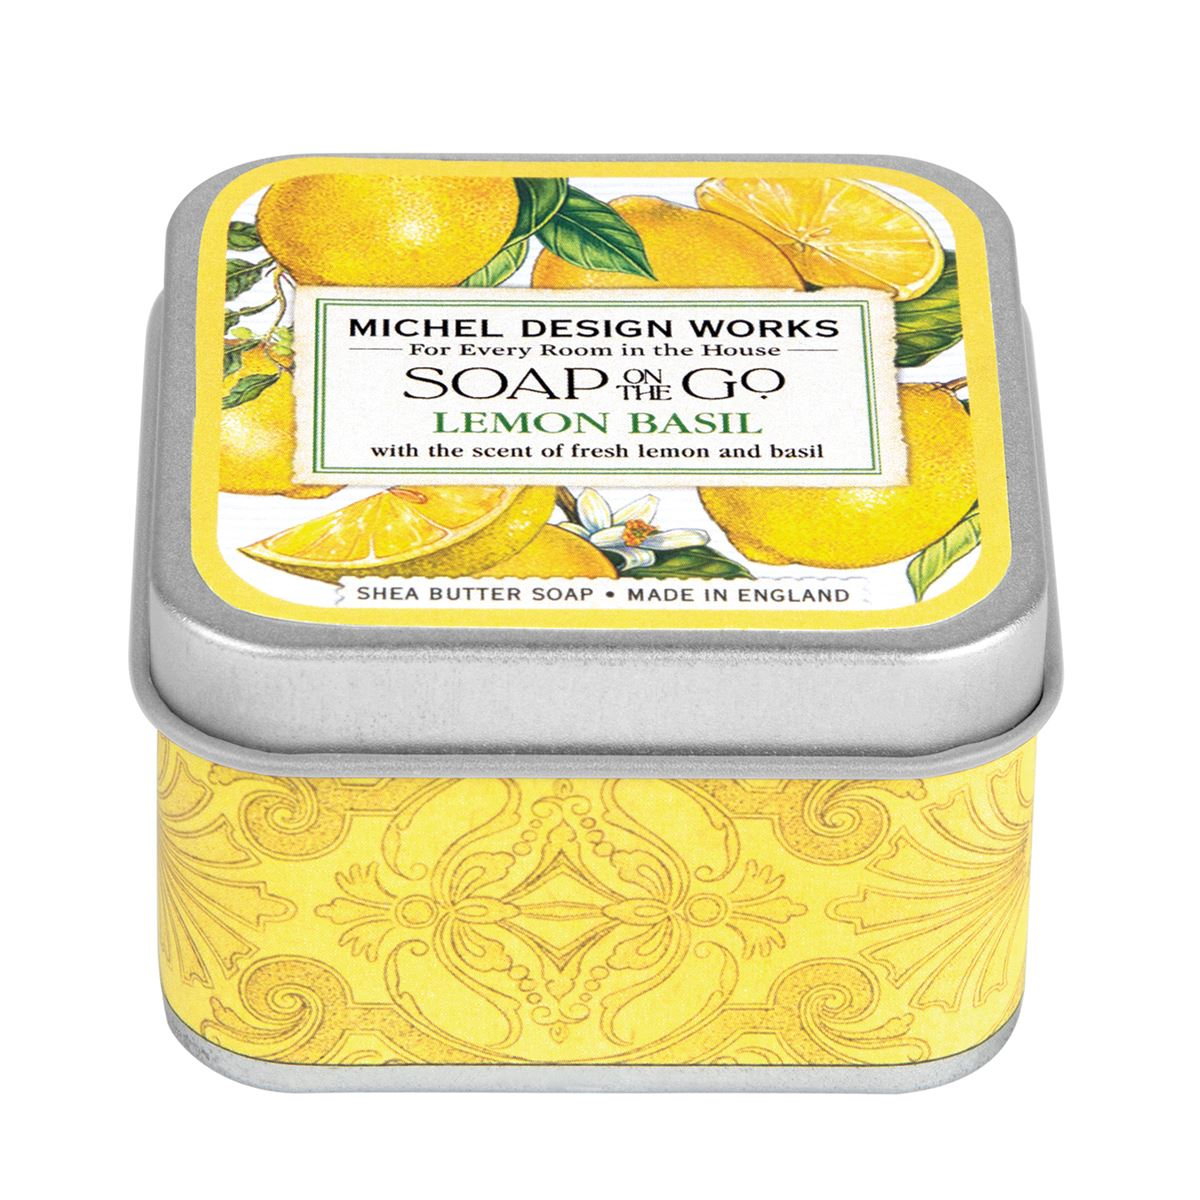 Lemon Basil Soap on the Go - Molly's! A Chic and Unique Boutique